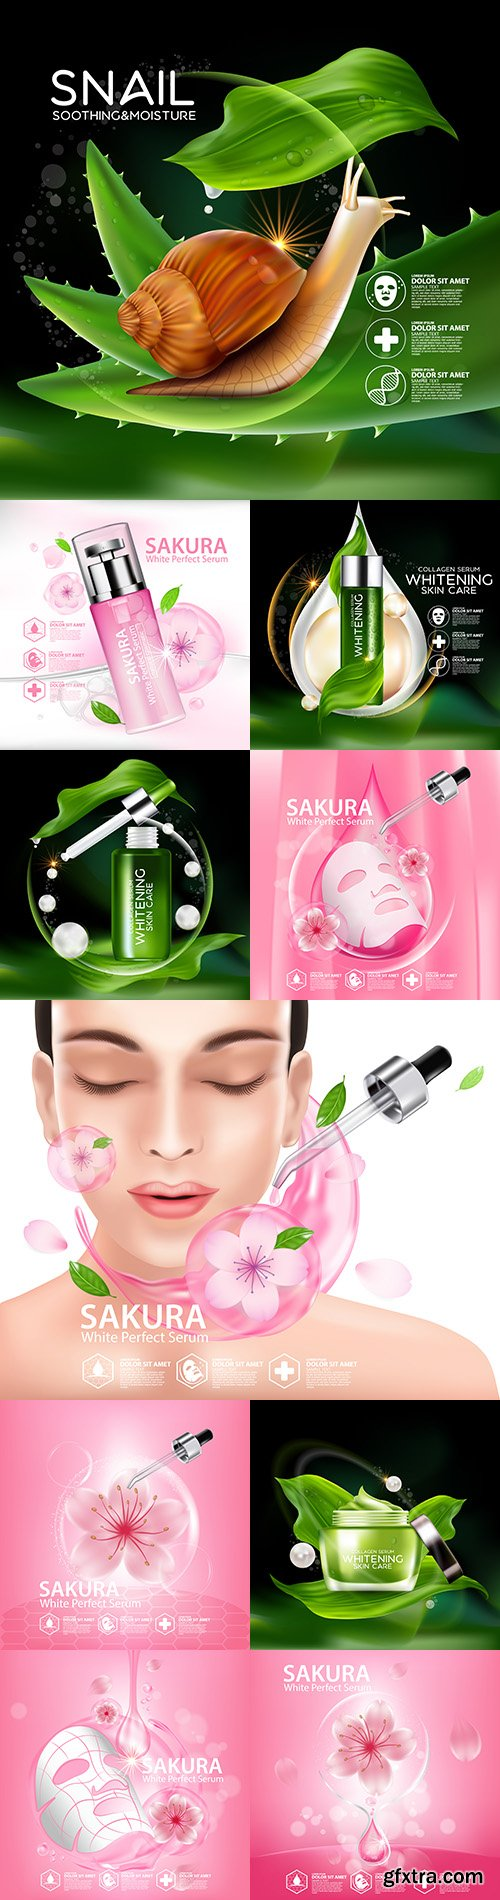 Skin care cosmetics with natural ingredients is realistic illustration